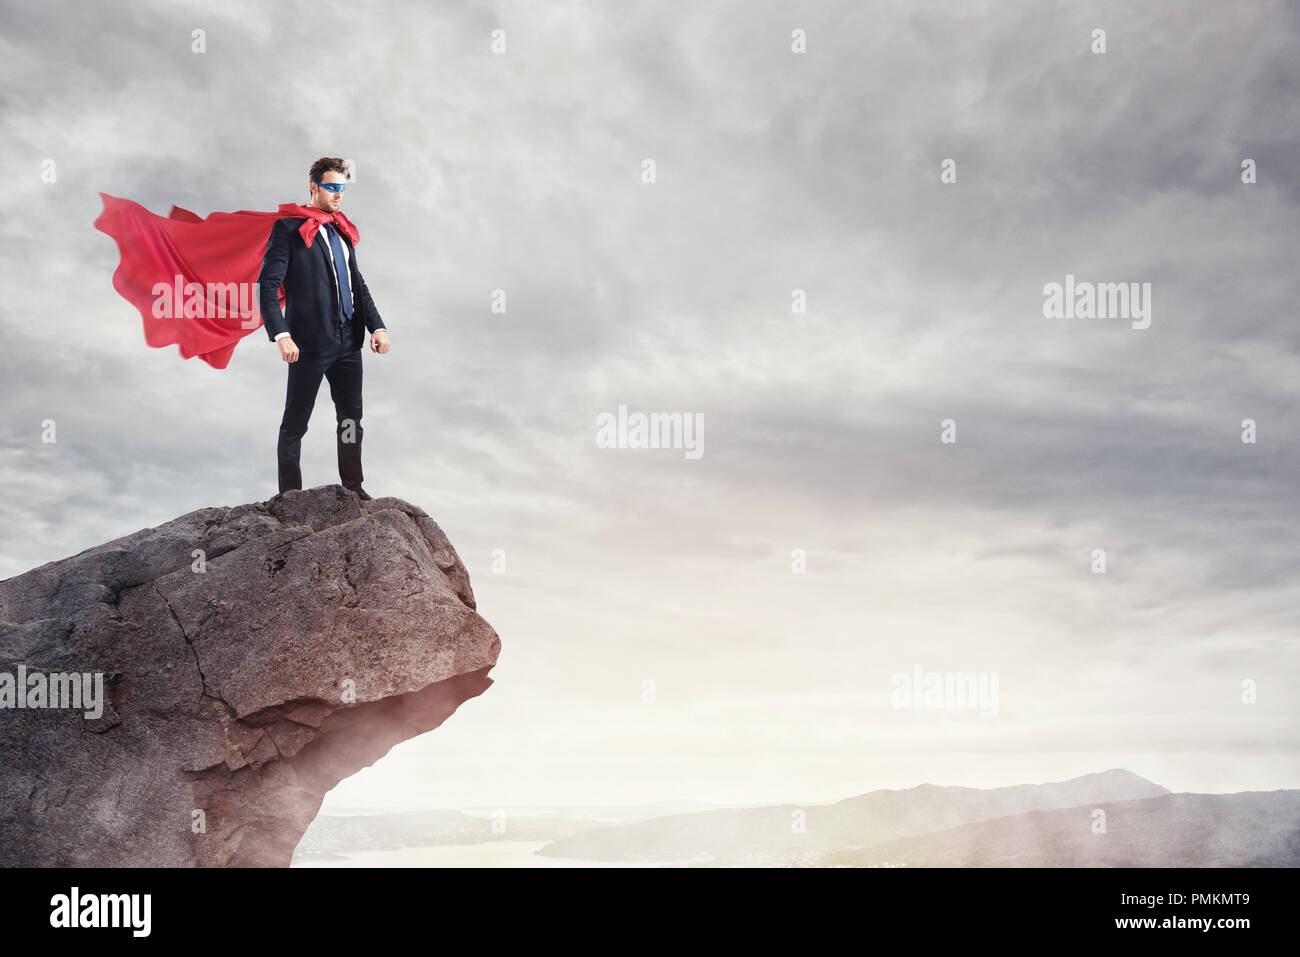 Businessman as a super hero on the peak of a mountain - Stock Image